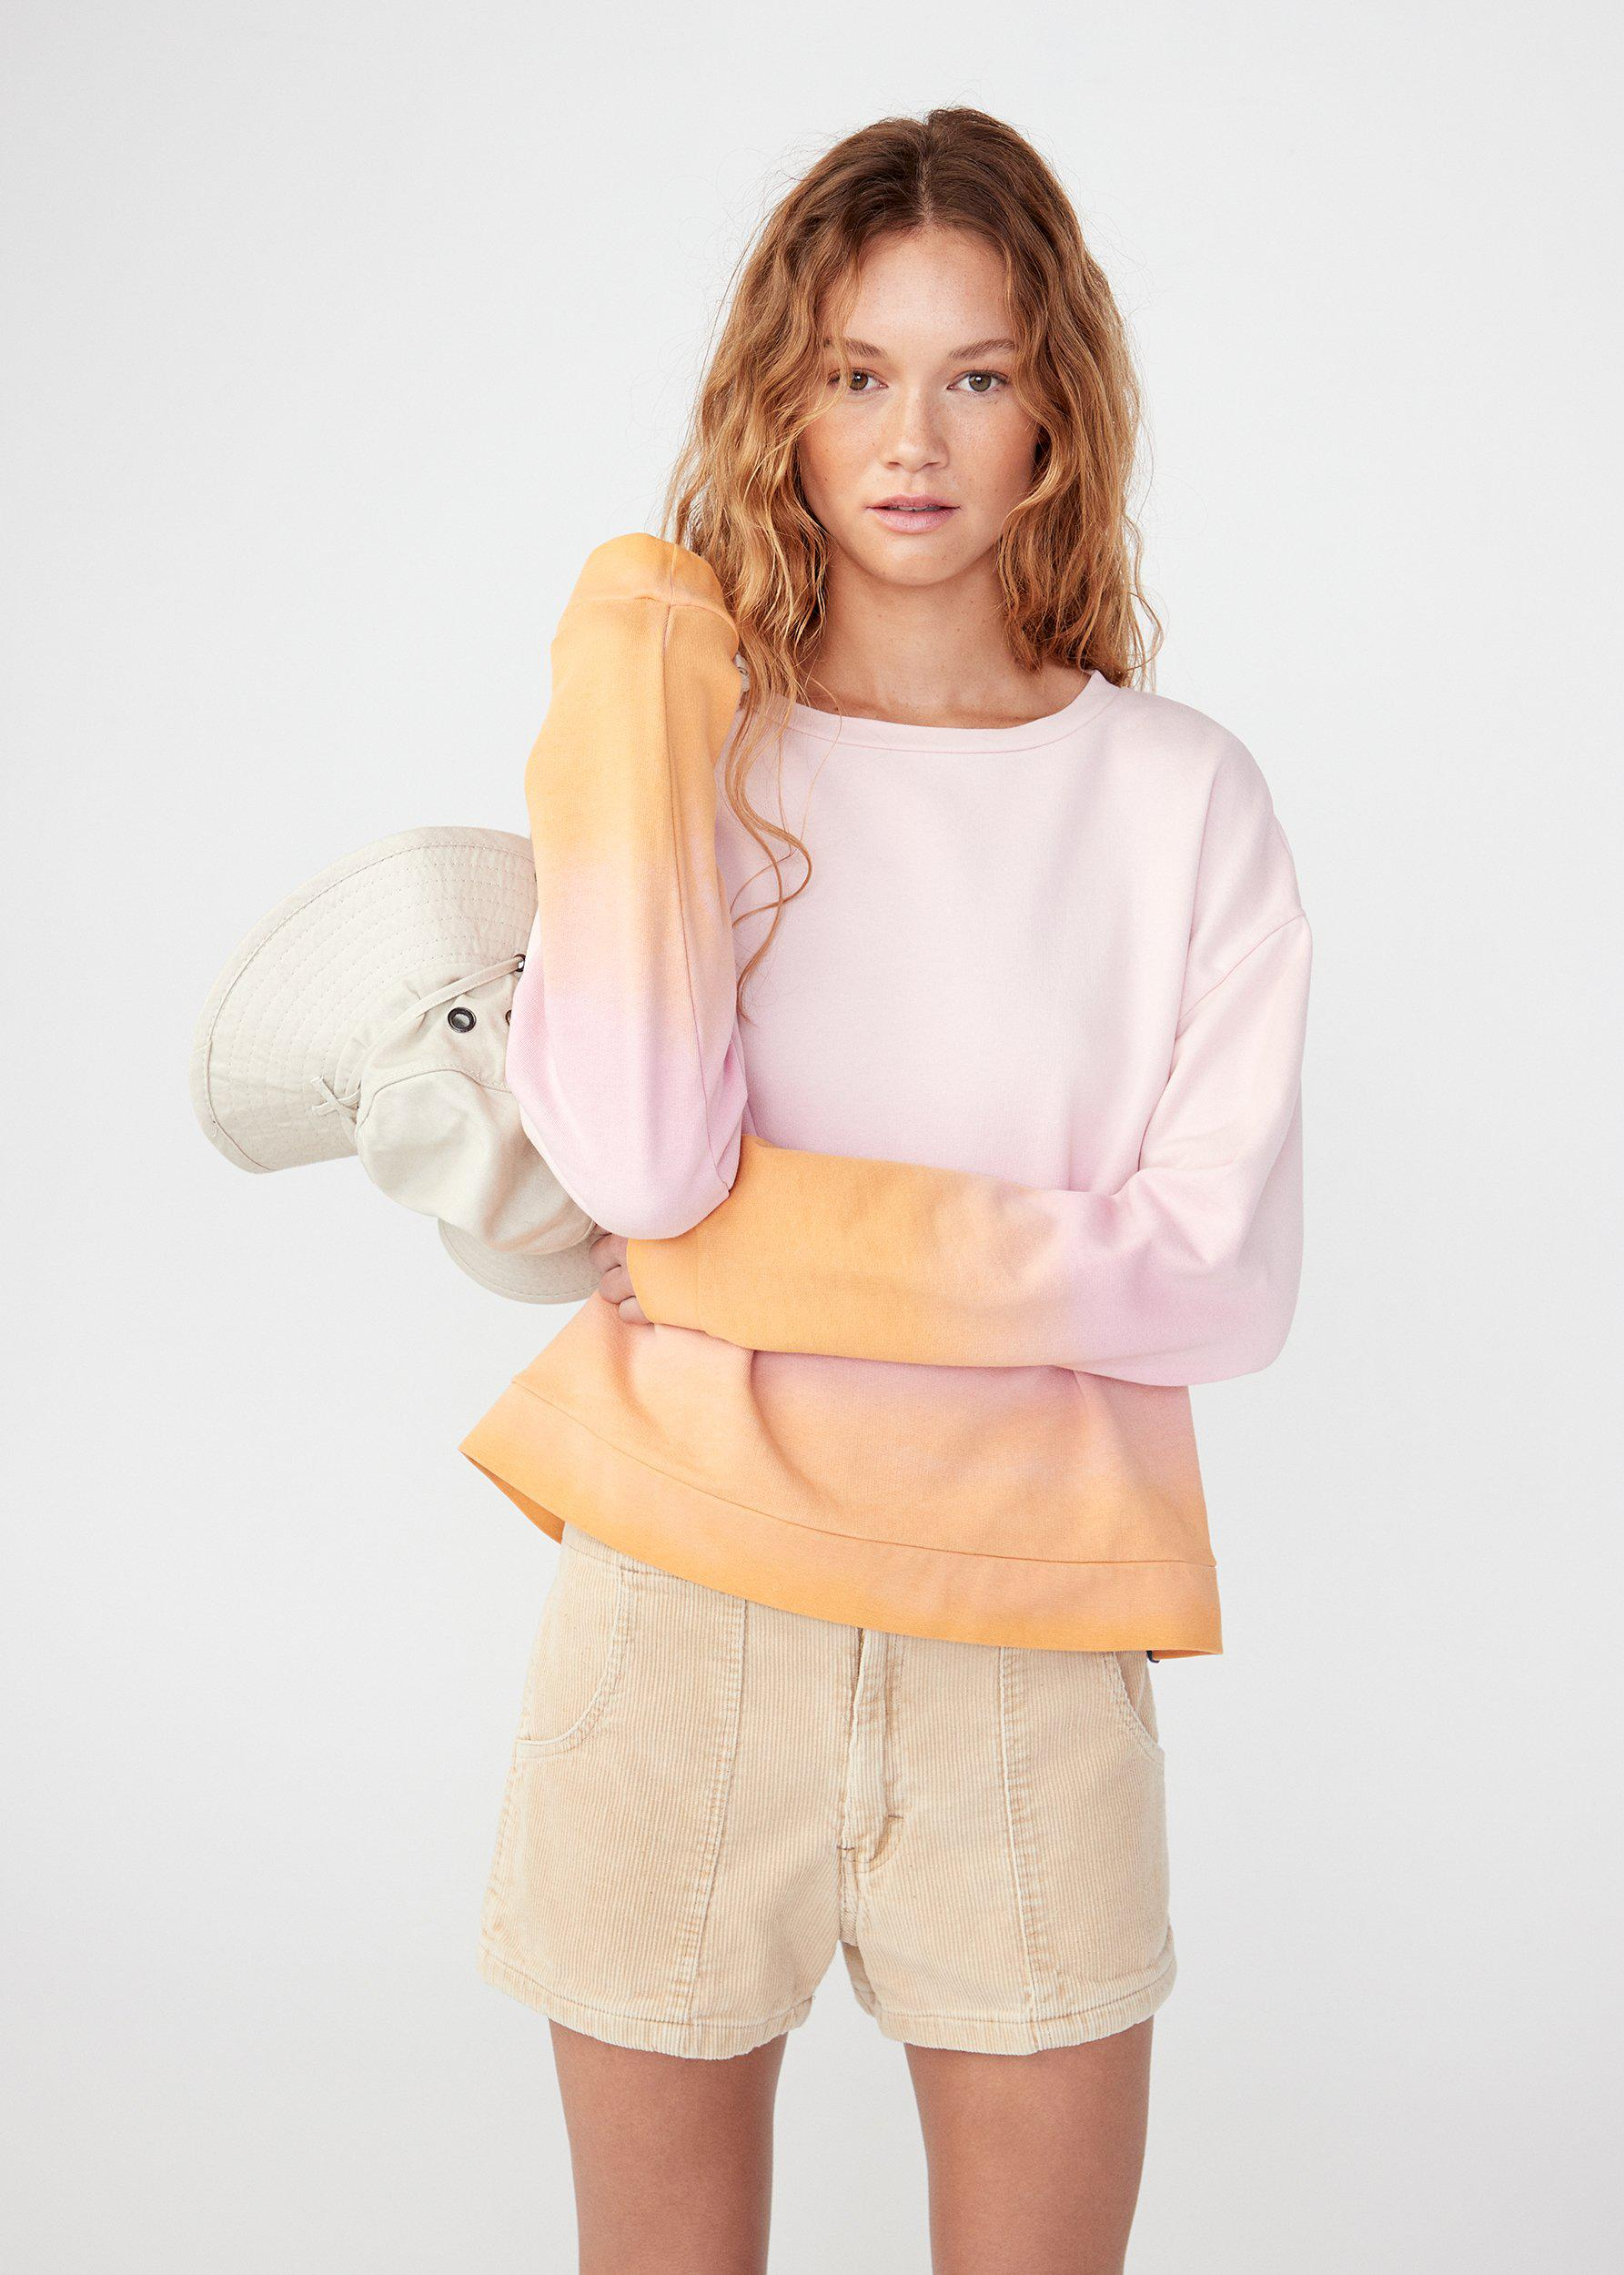 The Organic Ombre Summer - Pink/Gold 2